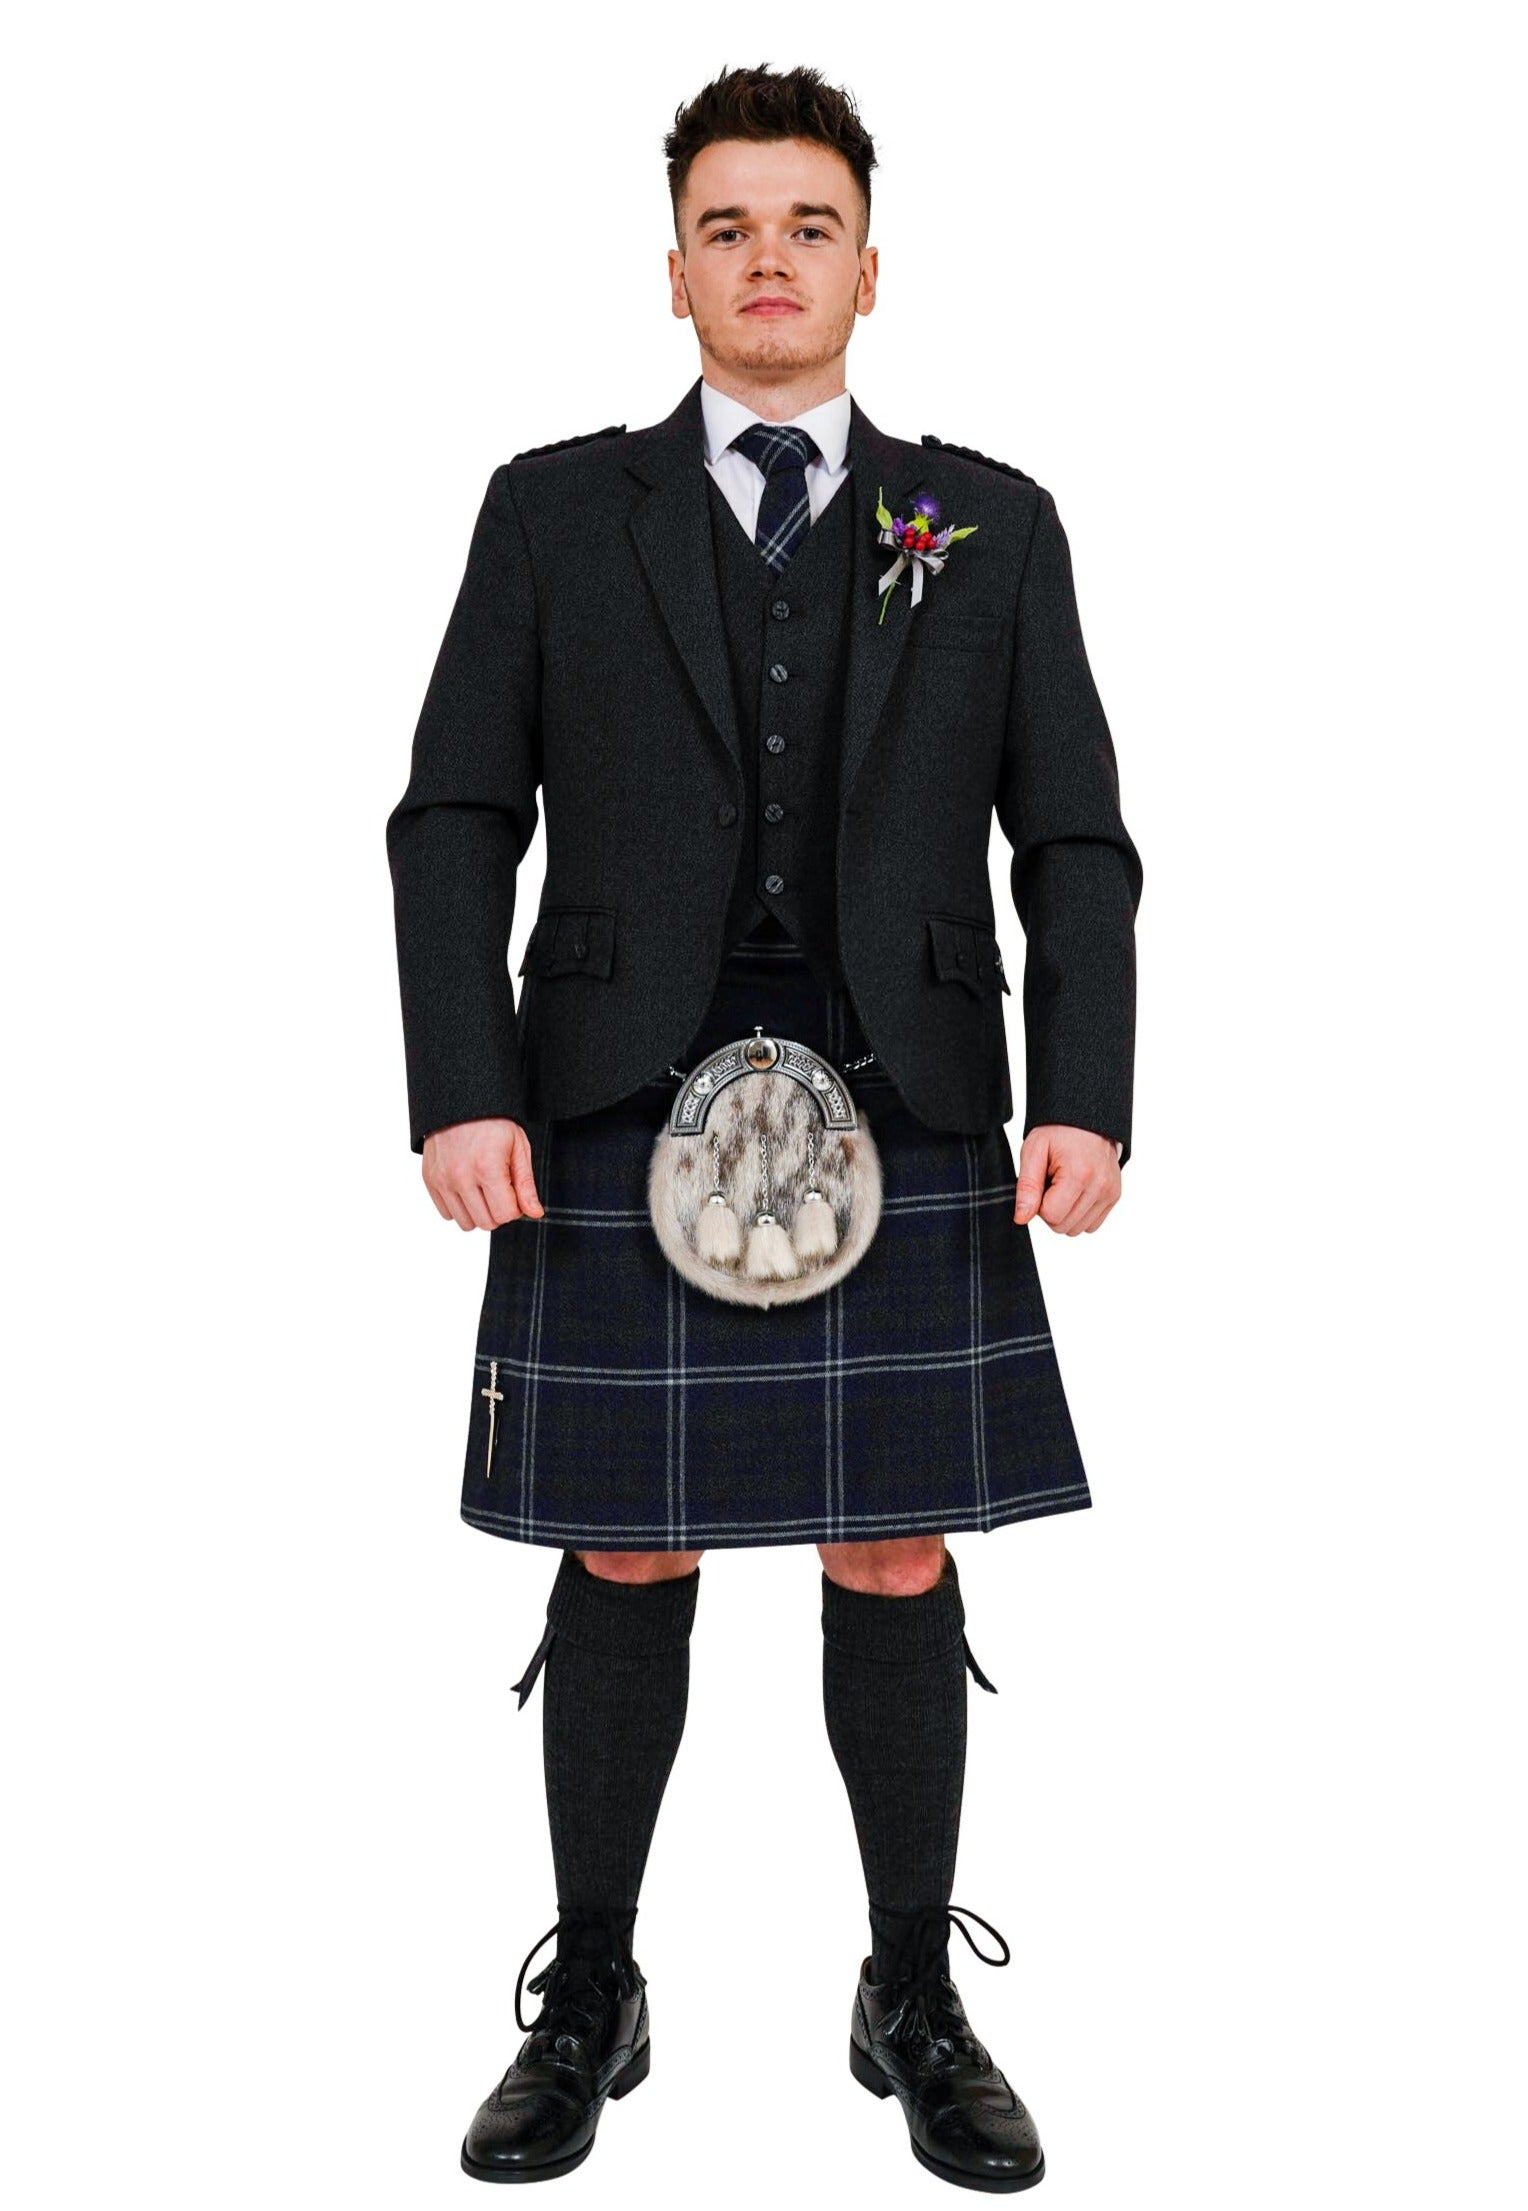 Charcoal crail kilt hire outfit with Grey Galloway kilt from Anderson Kilts Dumfries